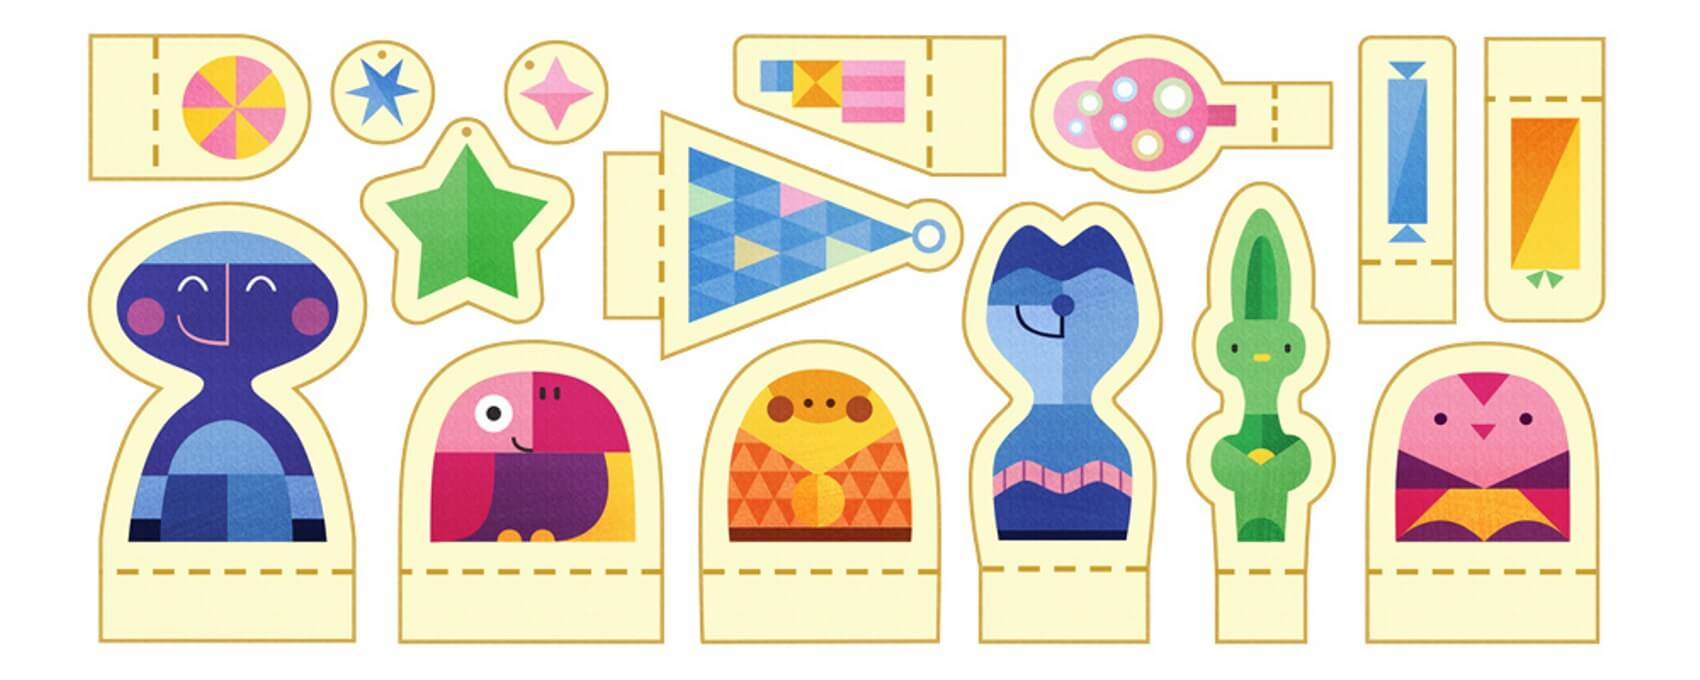 Tis The Season For Holiday Google Doodles Of Papercraft